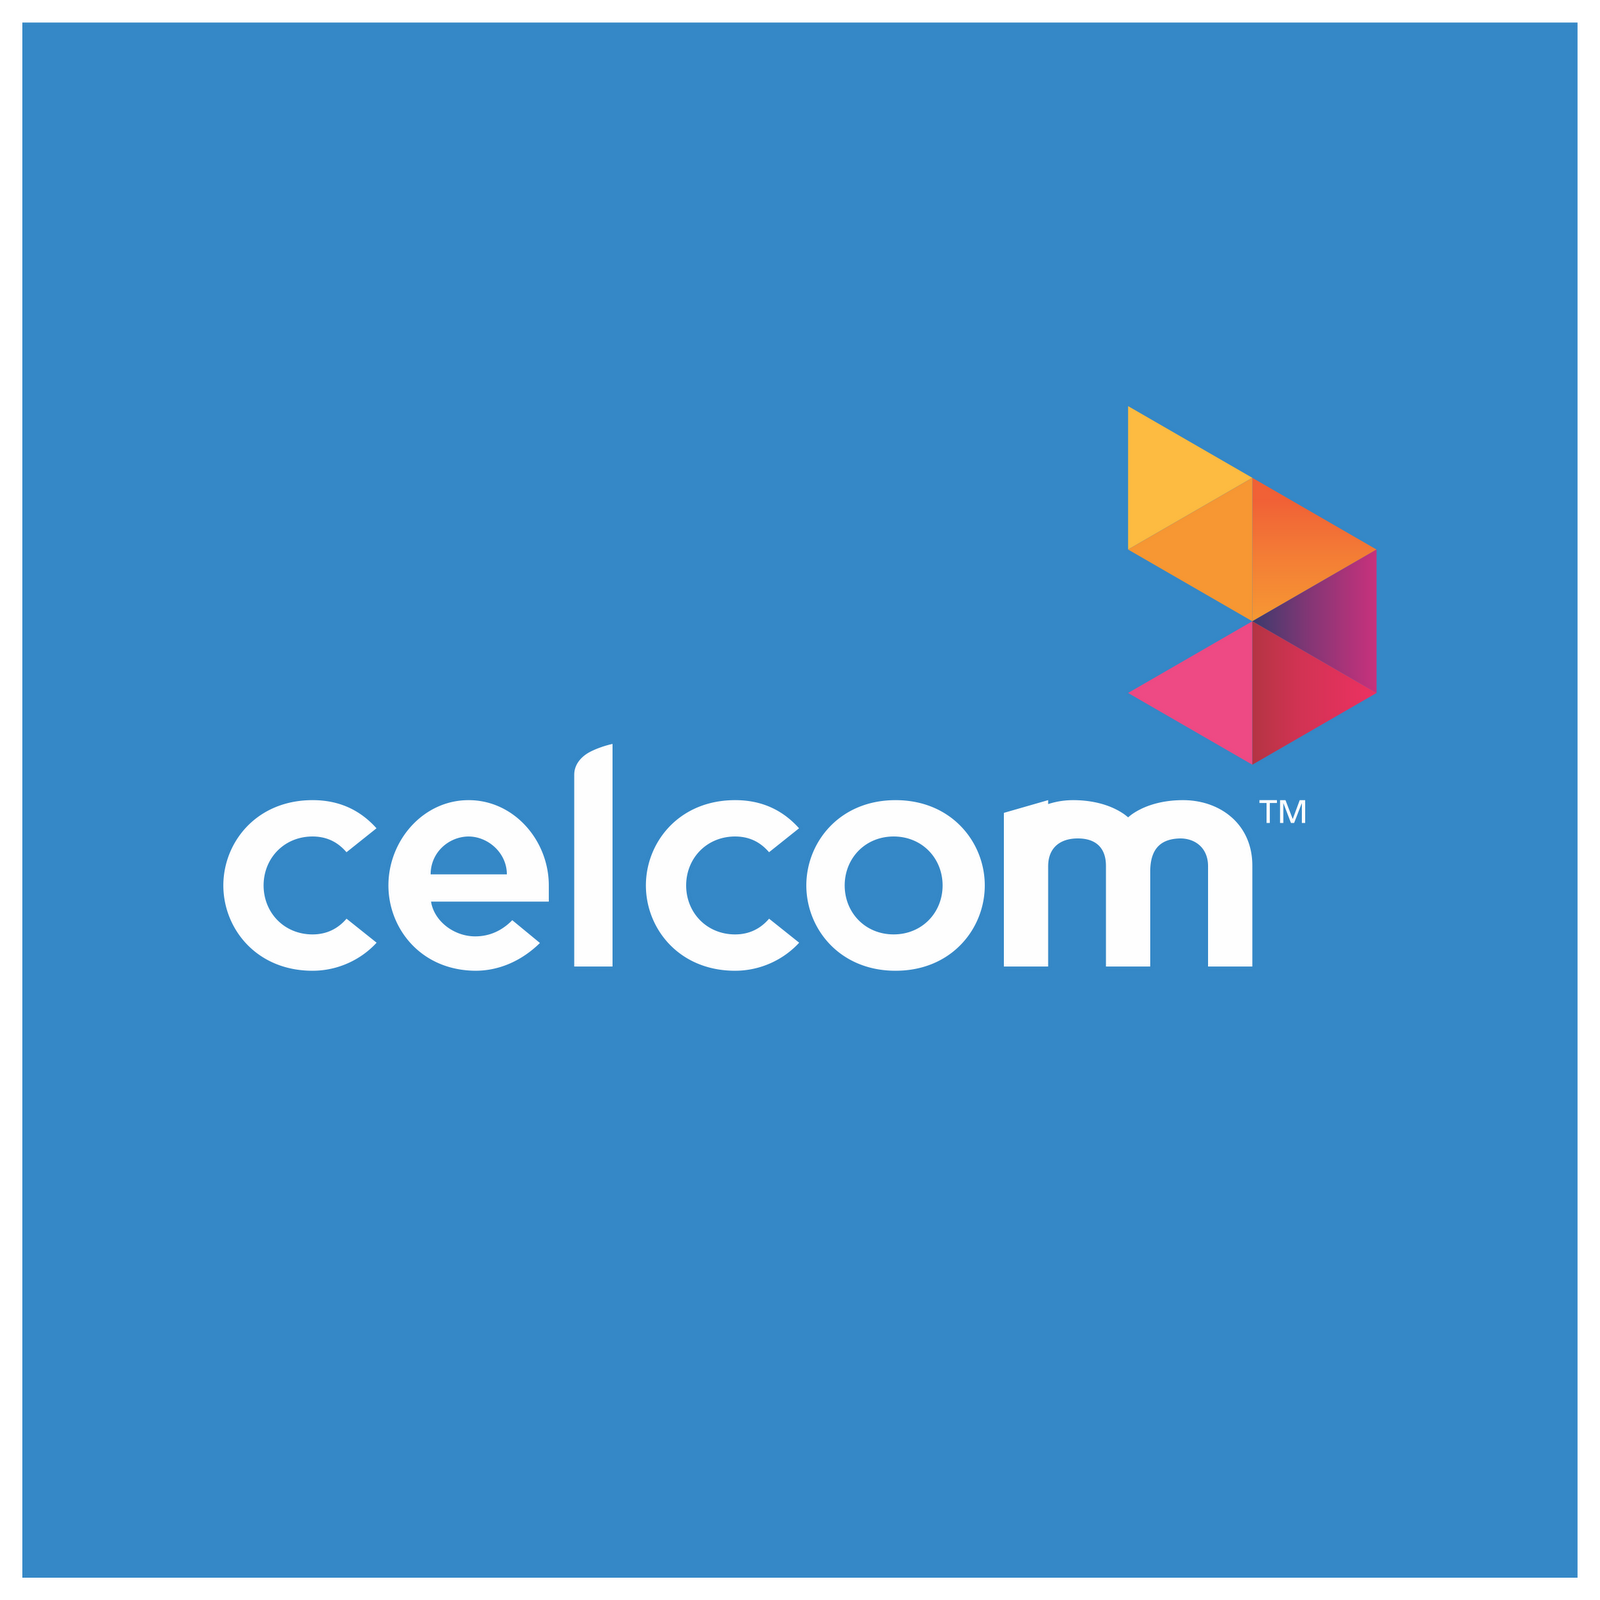 Celcom enhances Internet offering for First plans   The Mole